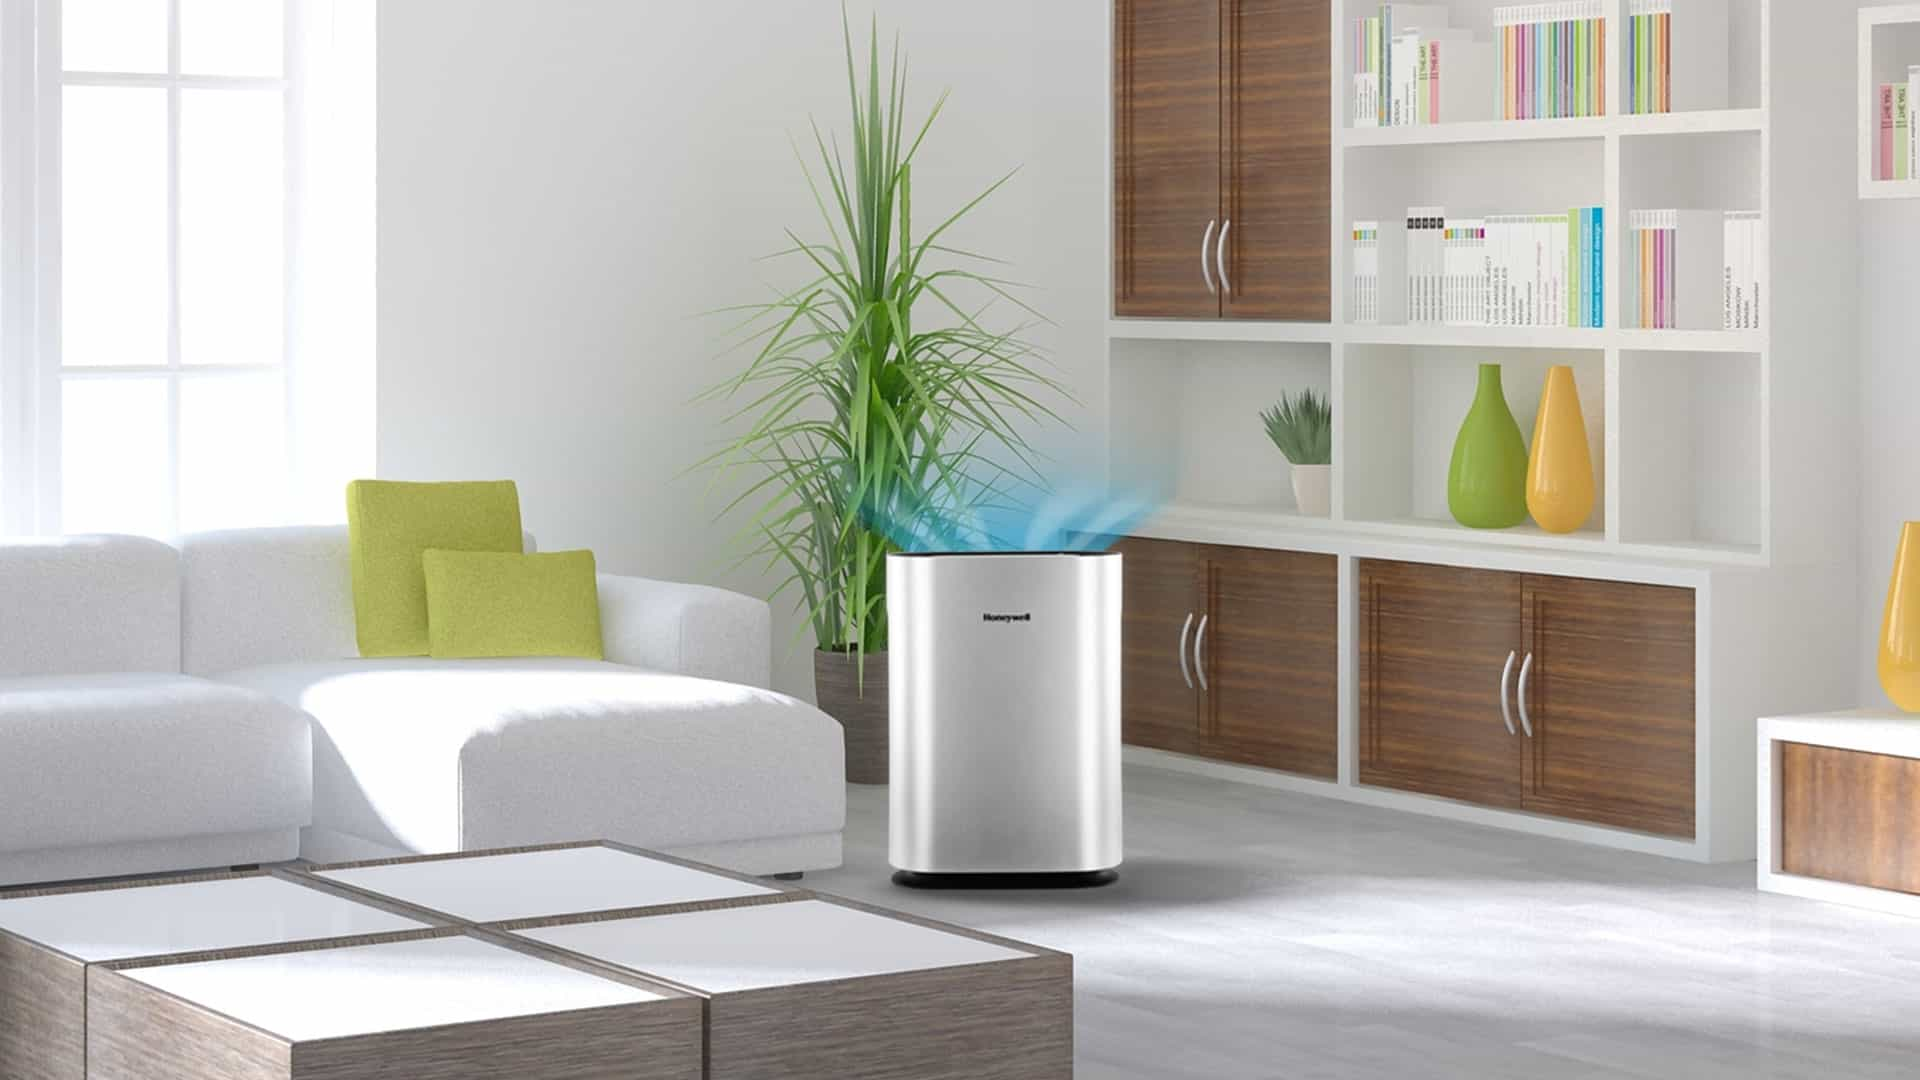 10 Reliable Air Purifier for Smoke Reviews – Breathe Better in 2020